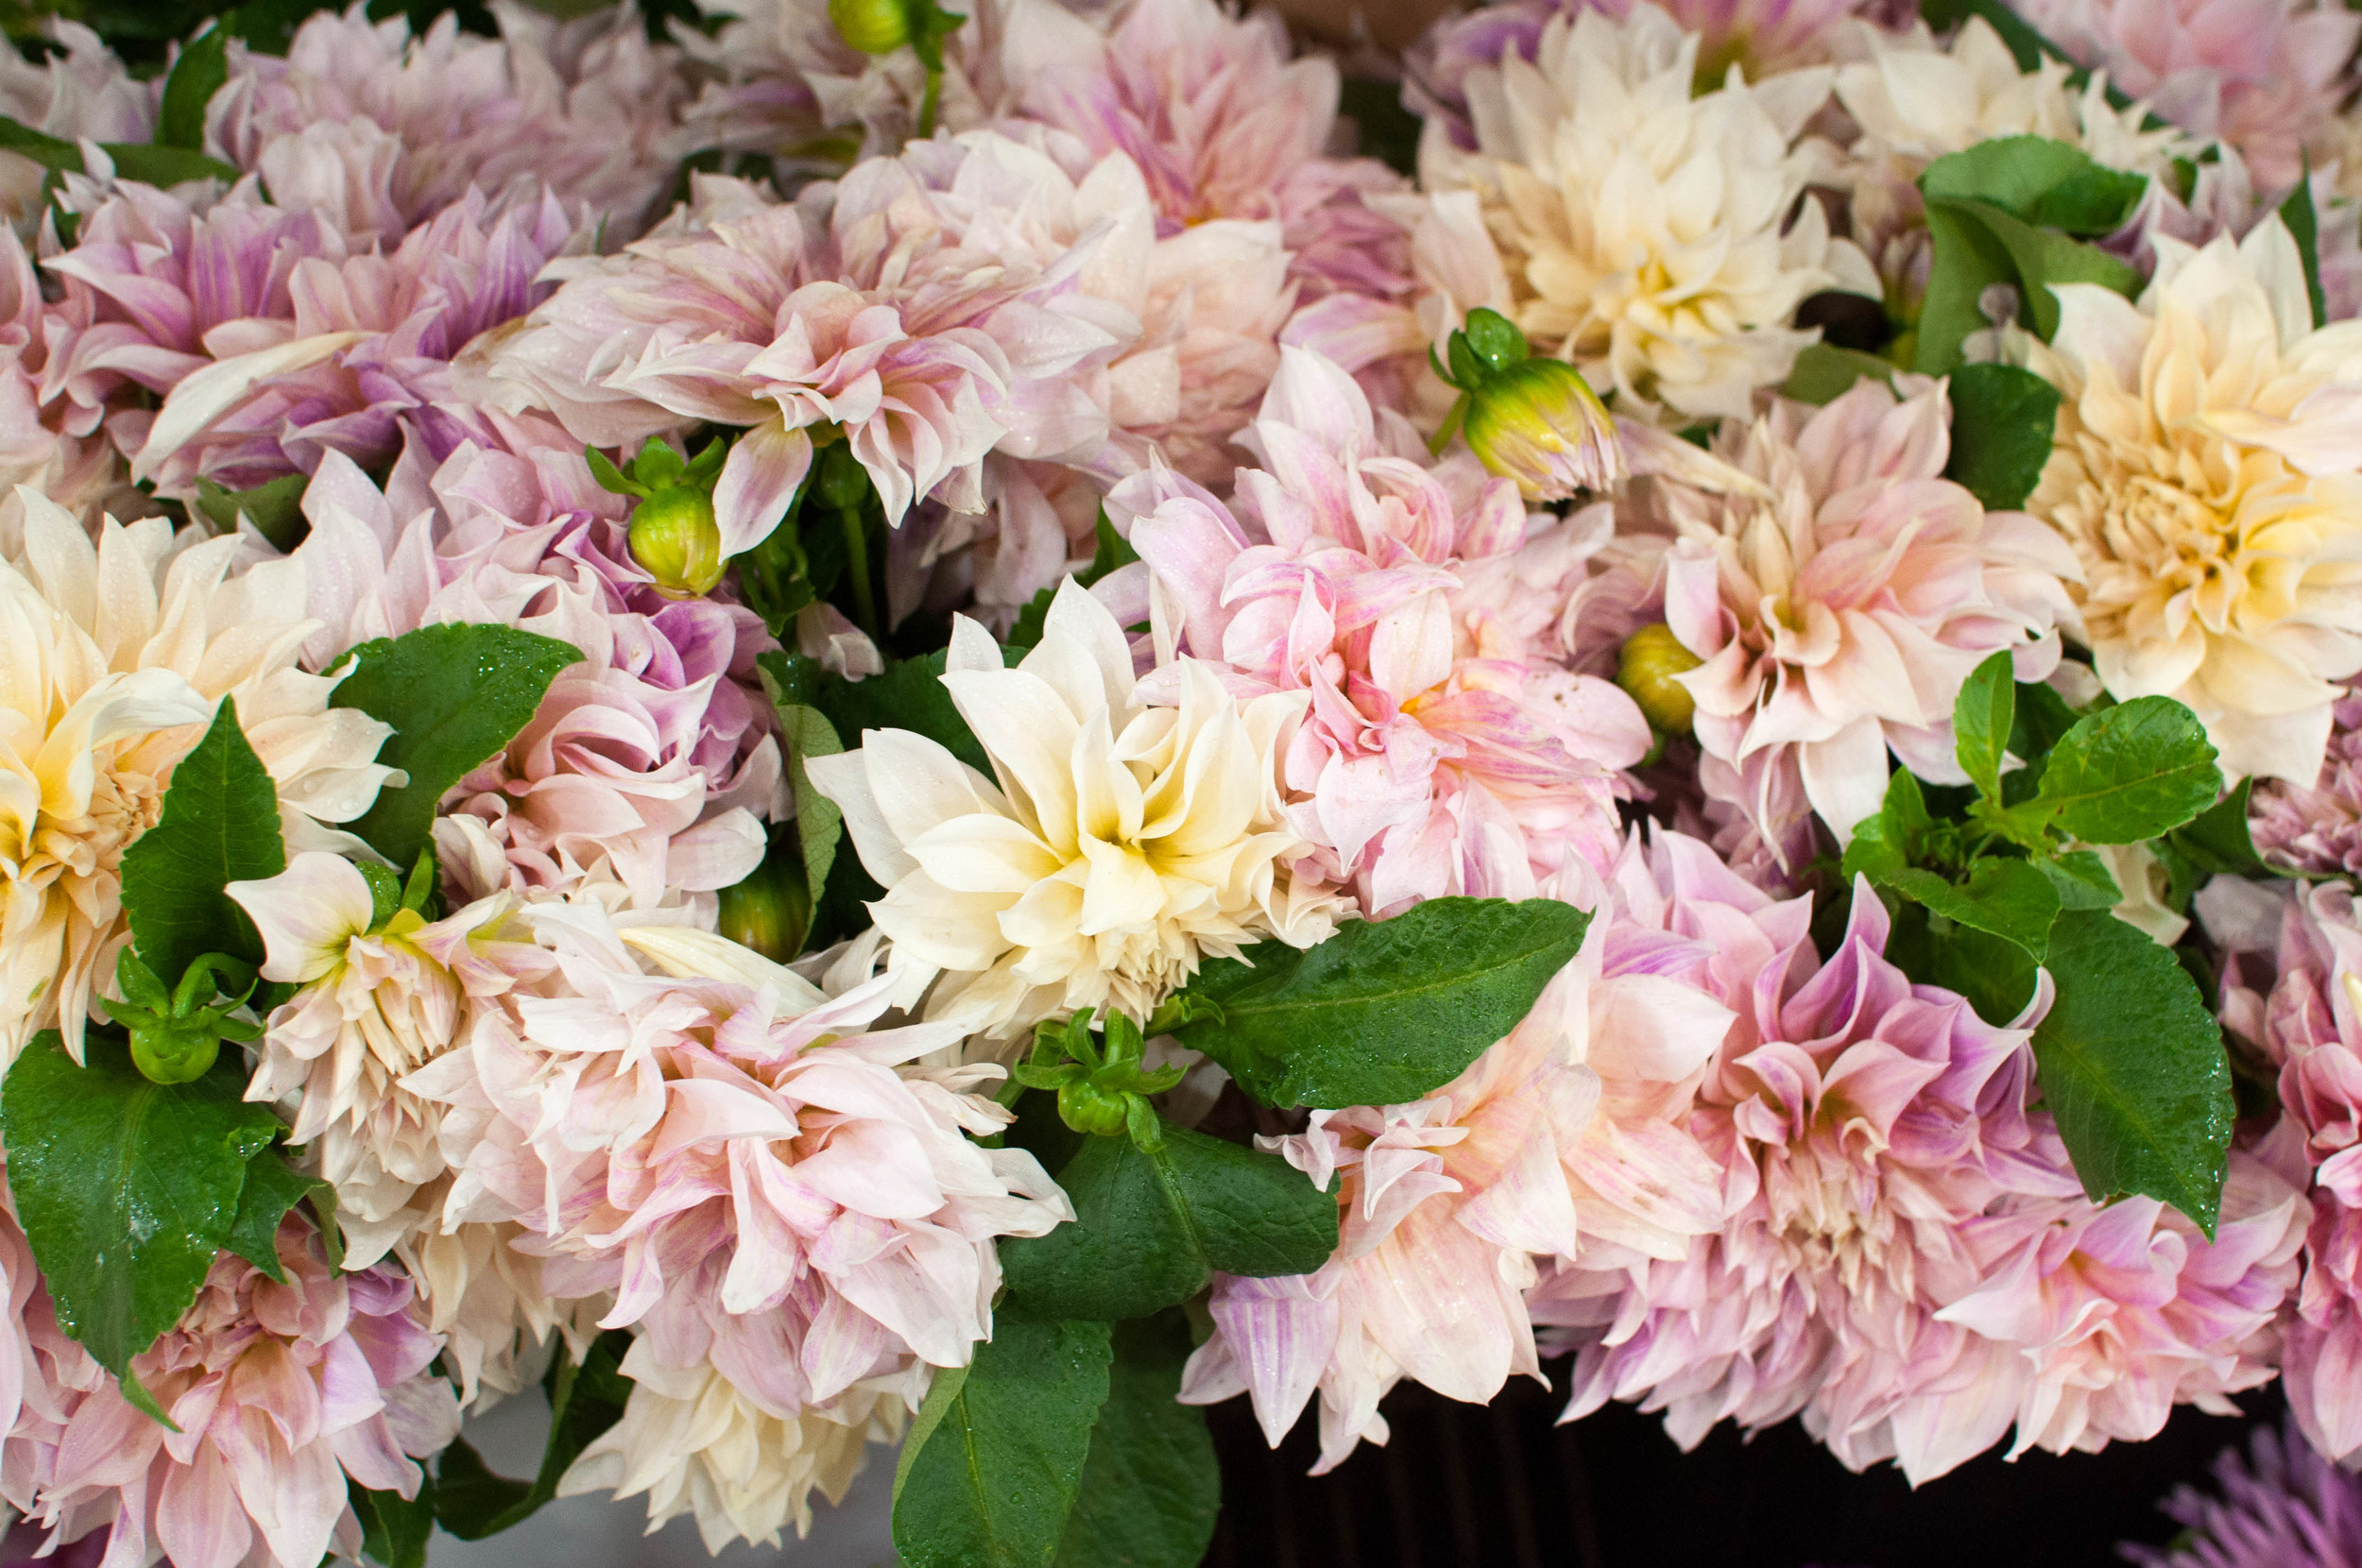 Dahlias for sale at the New York Flower Market.